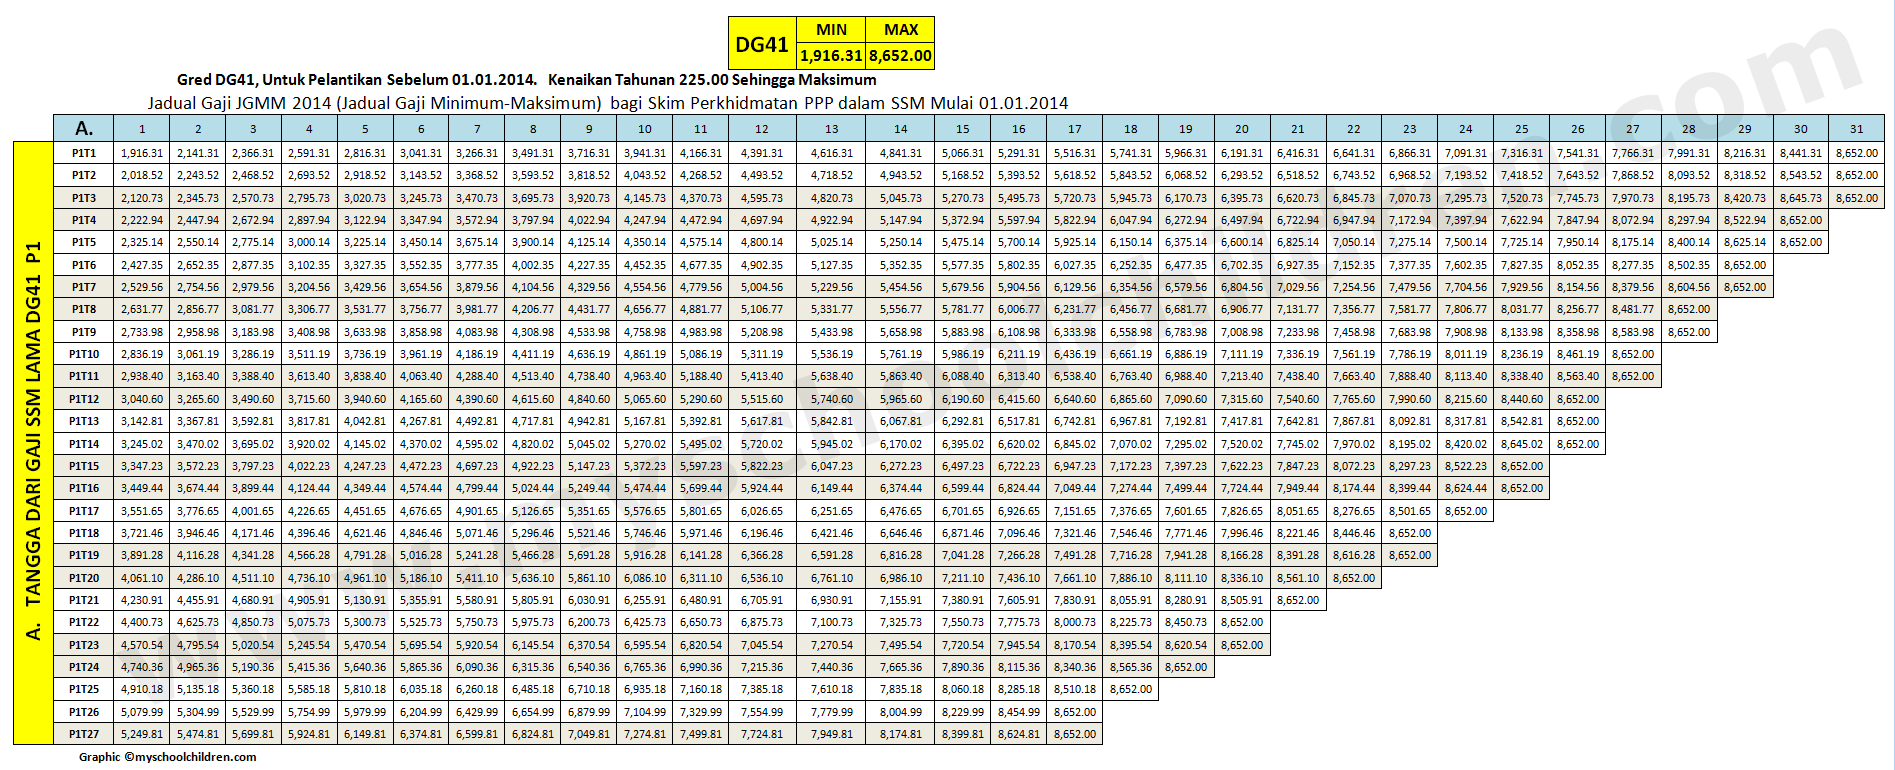 2014 Minimum-maximum Salary Scale (JGMM) for PPP Service Scheme with